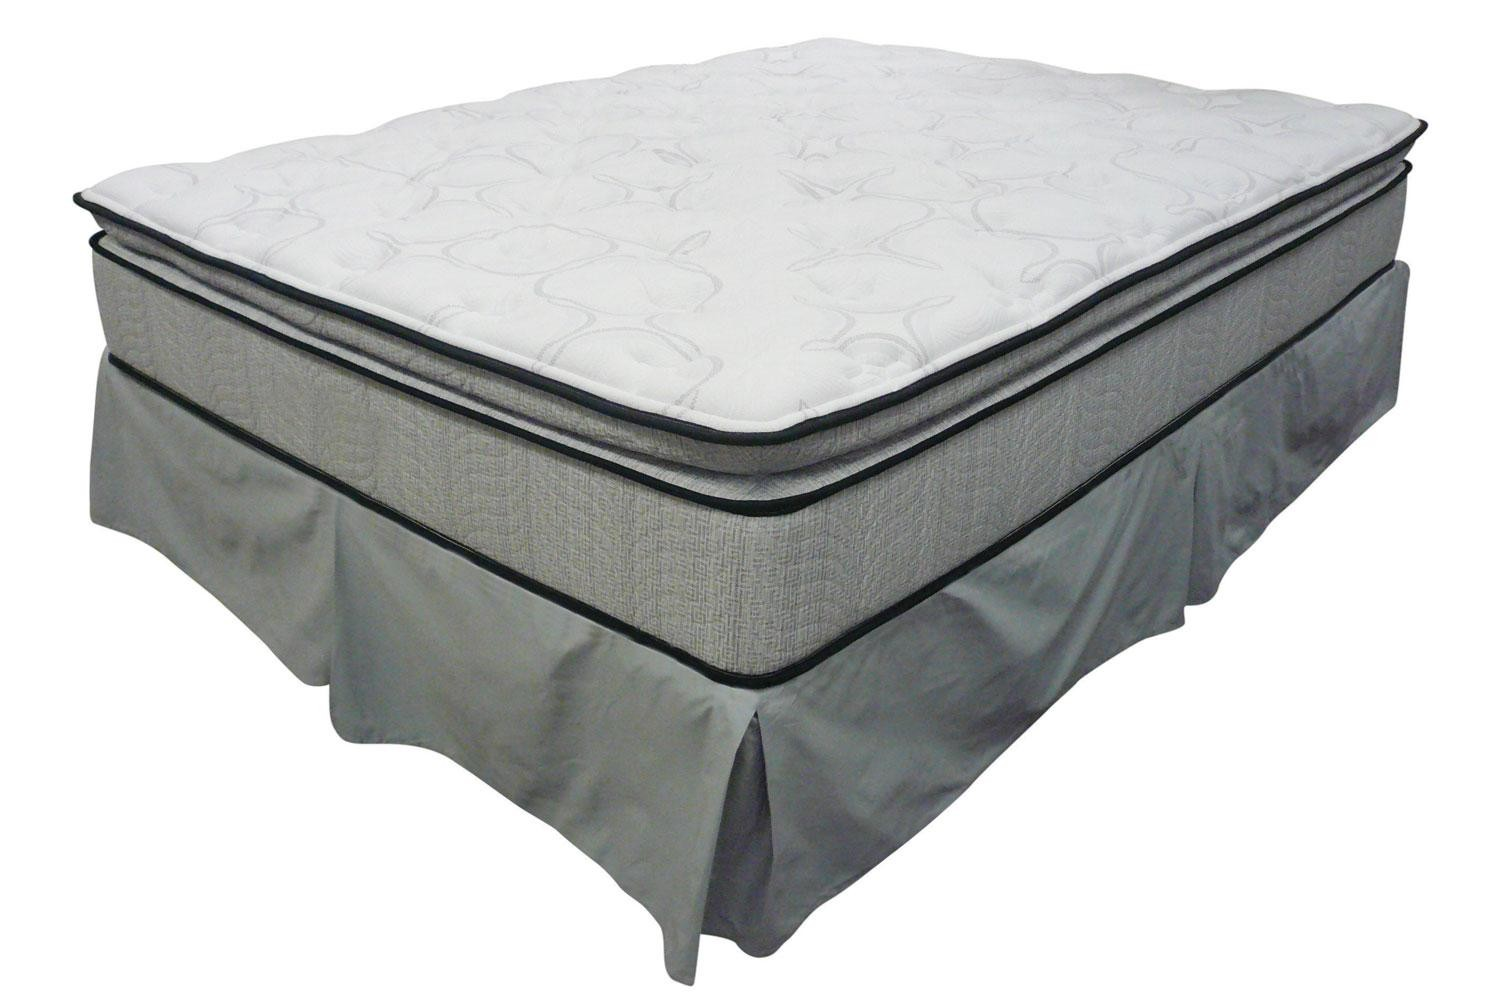 Pillow Top Mattress King Perfect Care Pillow Top Twin Mattress Set Pillow Top King Mattress